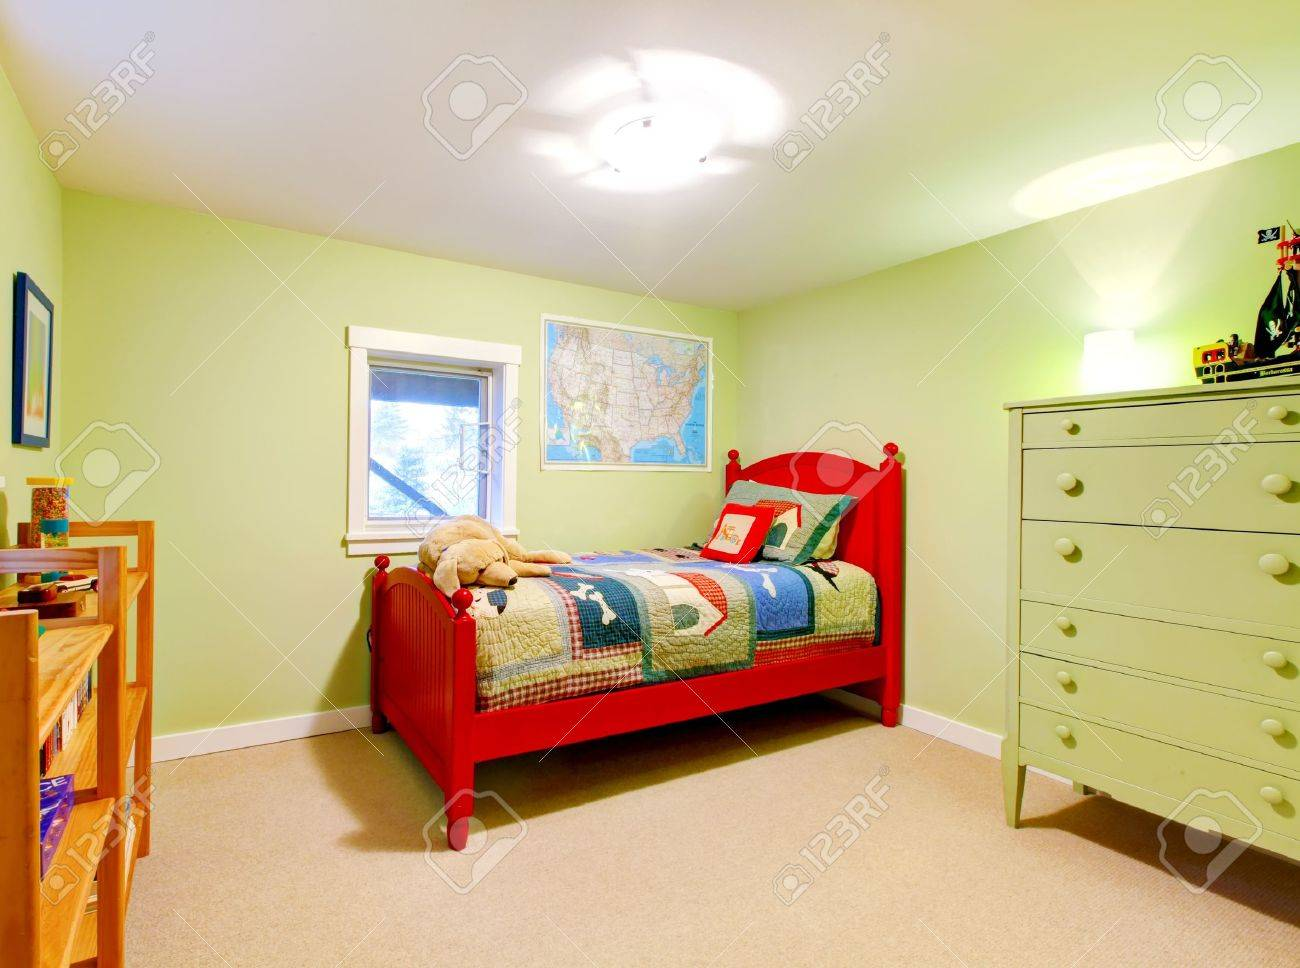 Cute child boy green bedroom with red bed. Stock Photo - 12760824